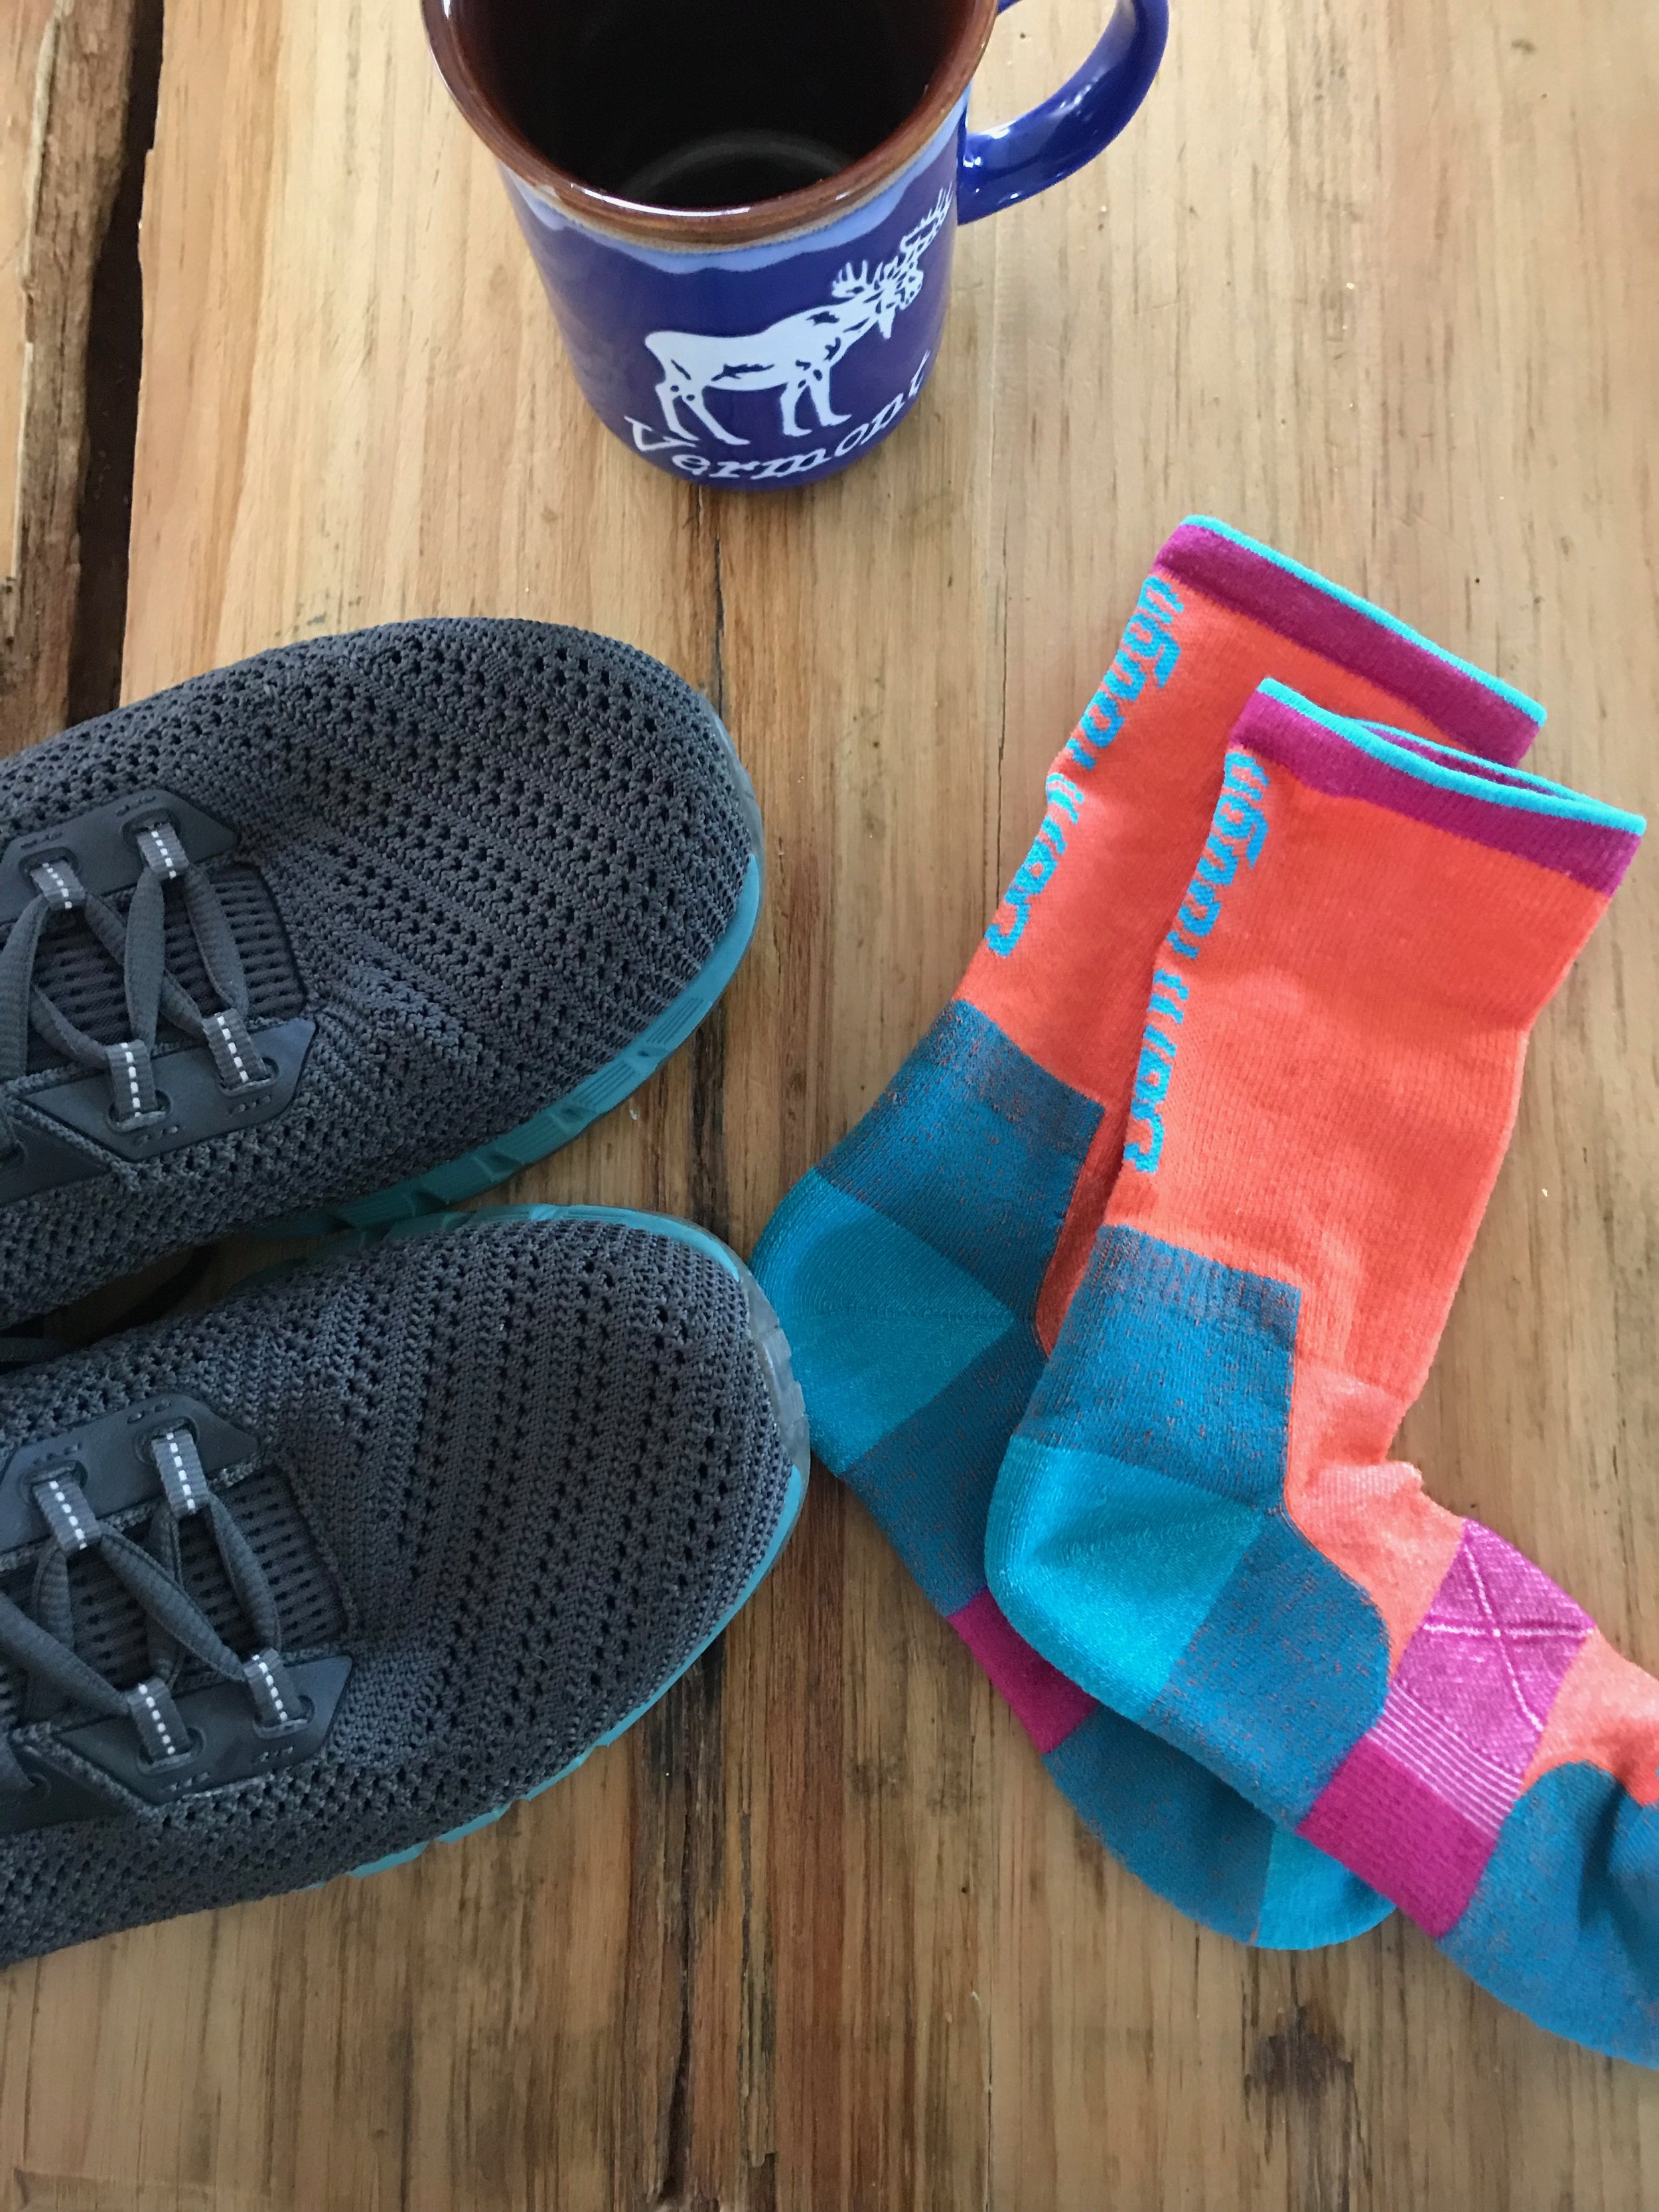 Running in Vermont wouldn't be complete without  Darn Tough  socks!